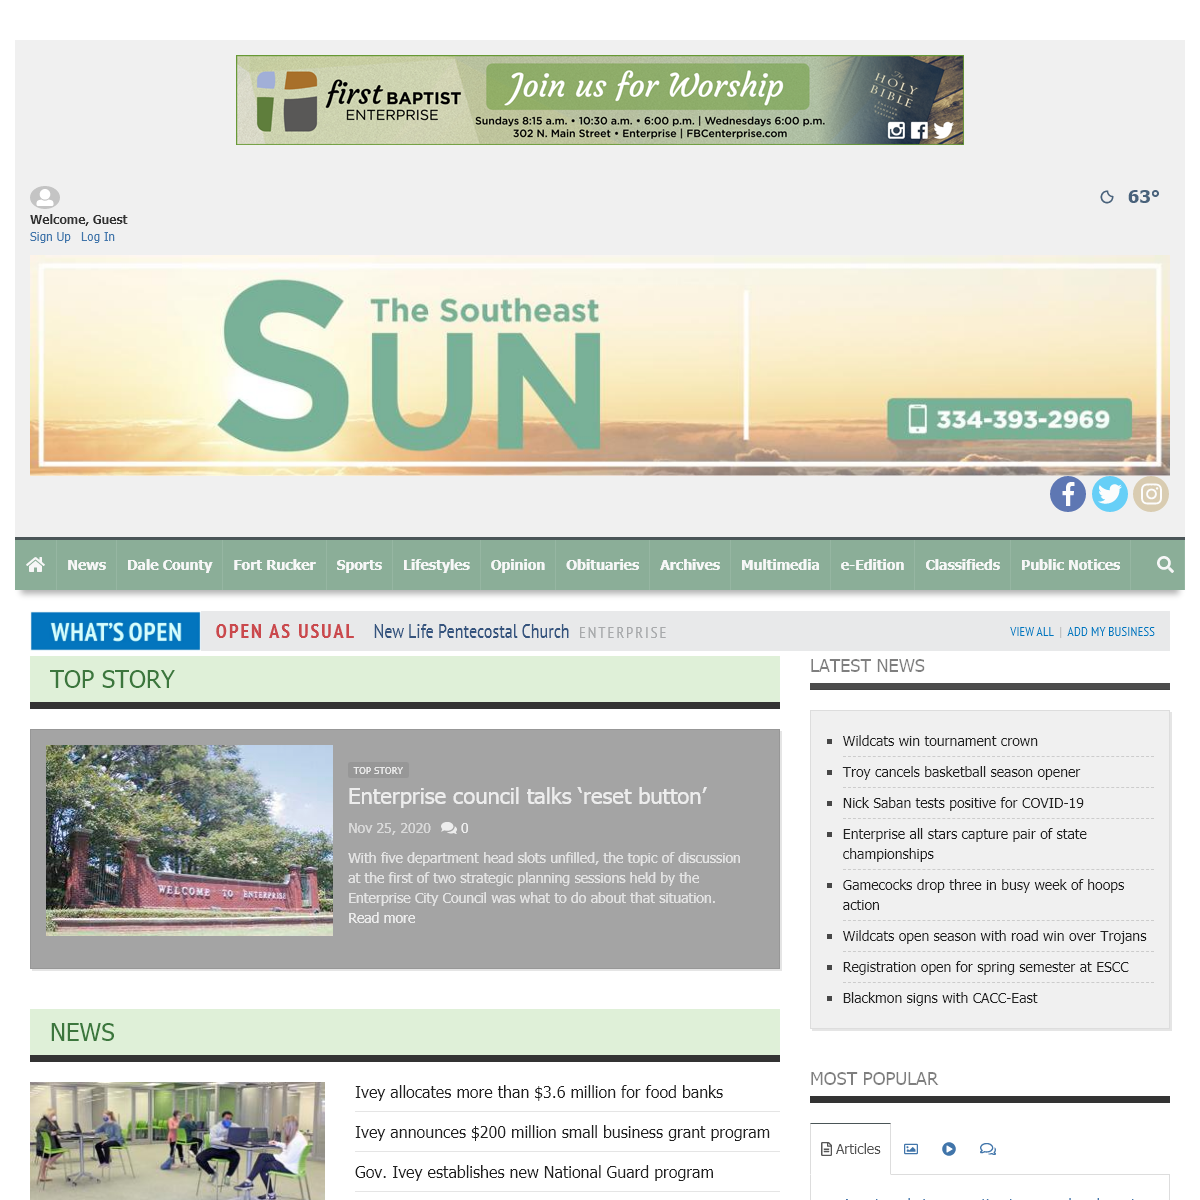 southeastsun.com - Committed to covering our community